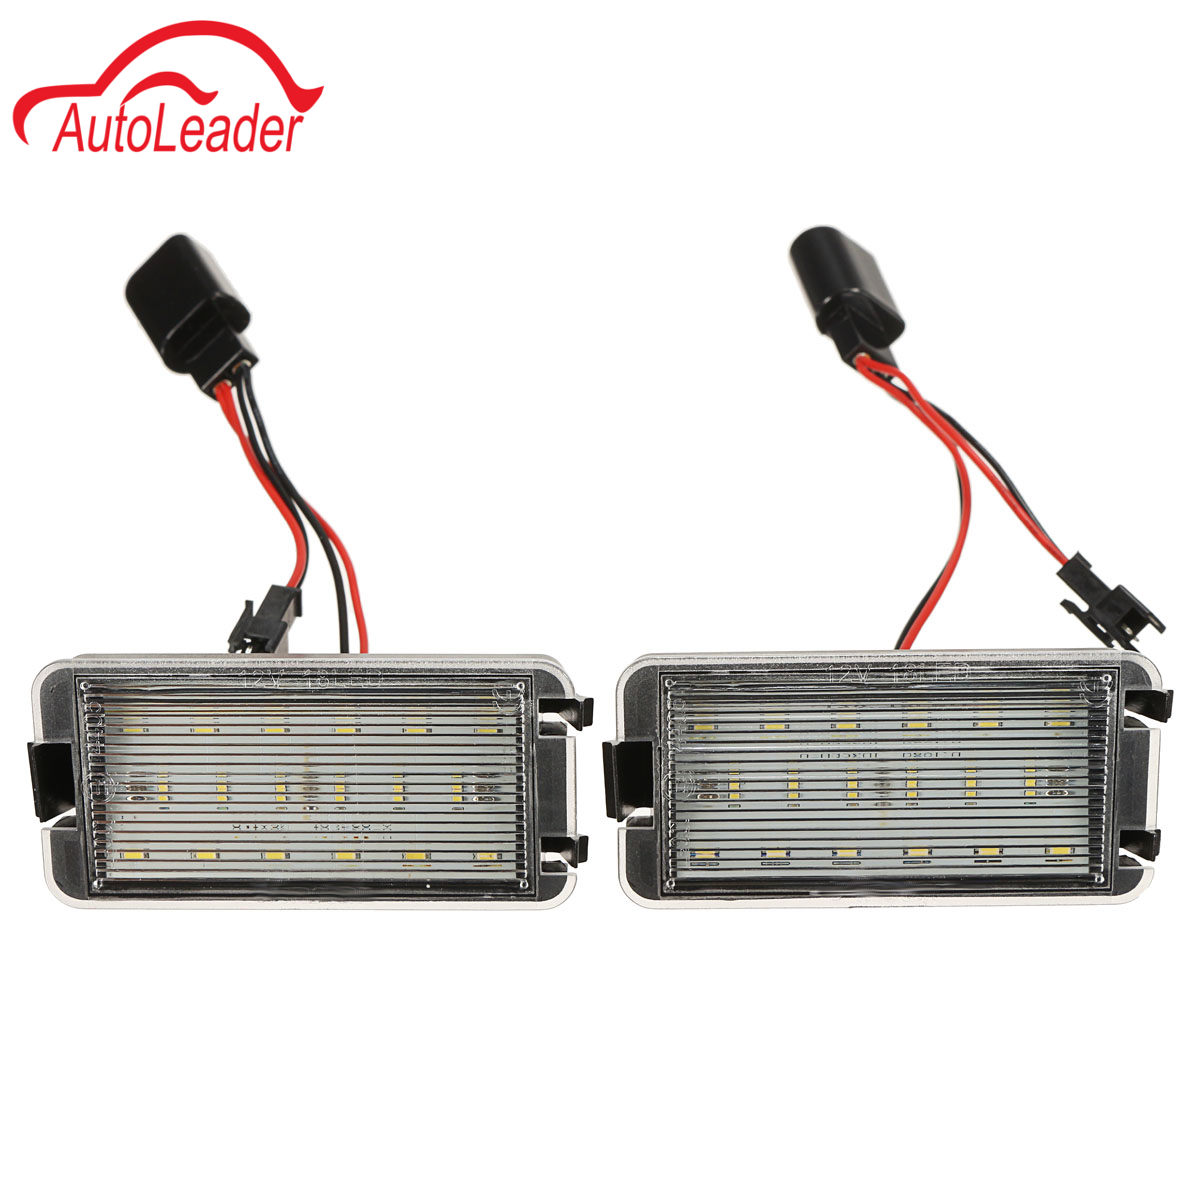 2pcs LED Car Tail Number License Plate Lights Lamps NO error For Seat Ibiza 6L ab for Seat CORDOBA/LEON/TOLEDO 2 pairs canbus no error auto led license plate lamp car number lights for chevrolet canbus cruze all cars 09